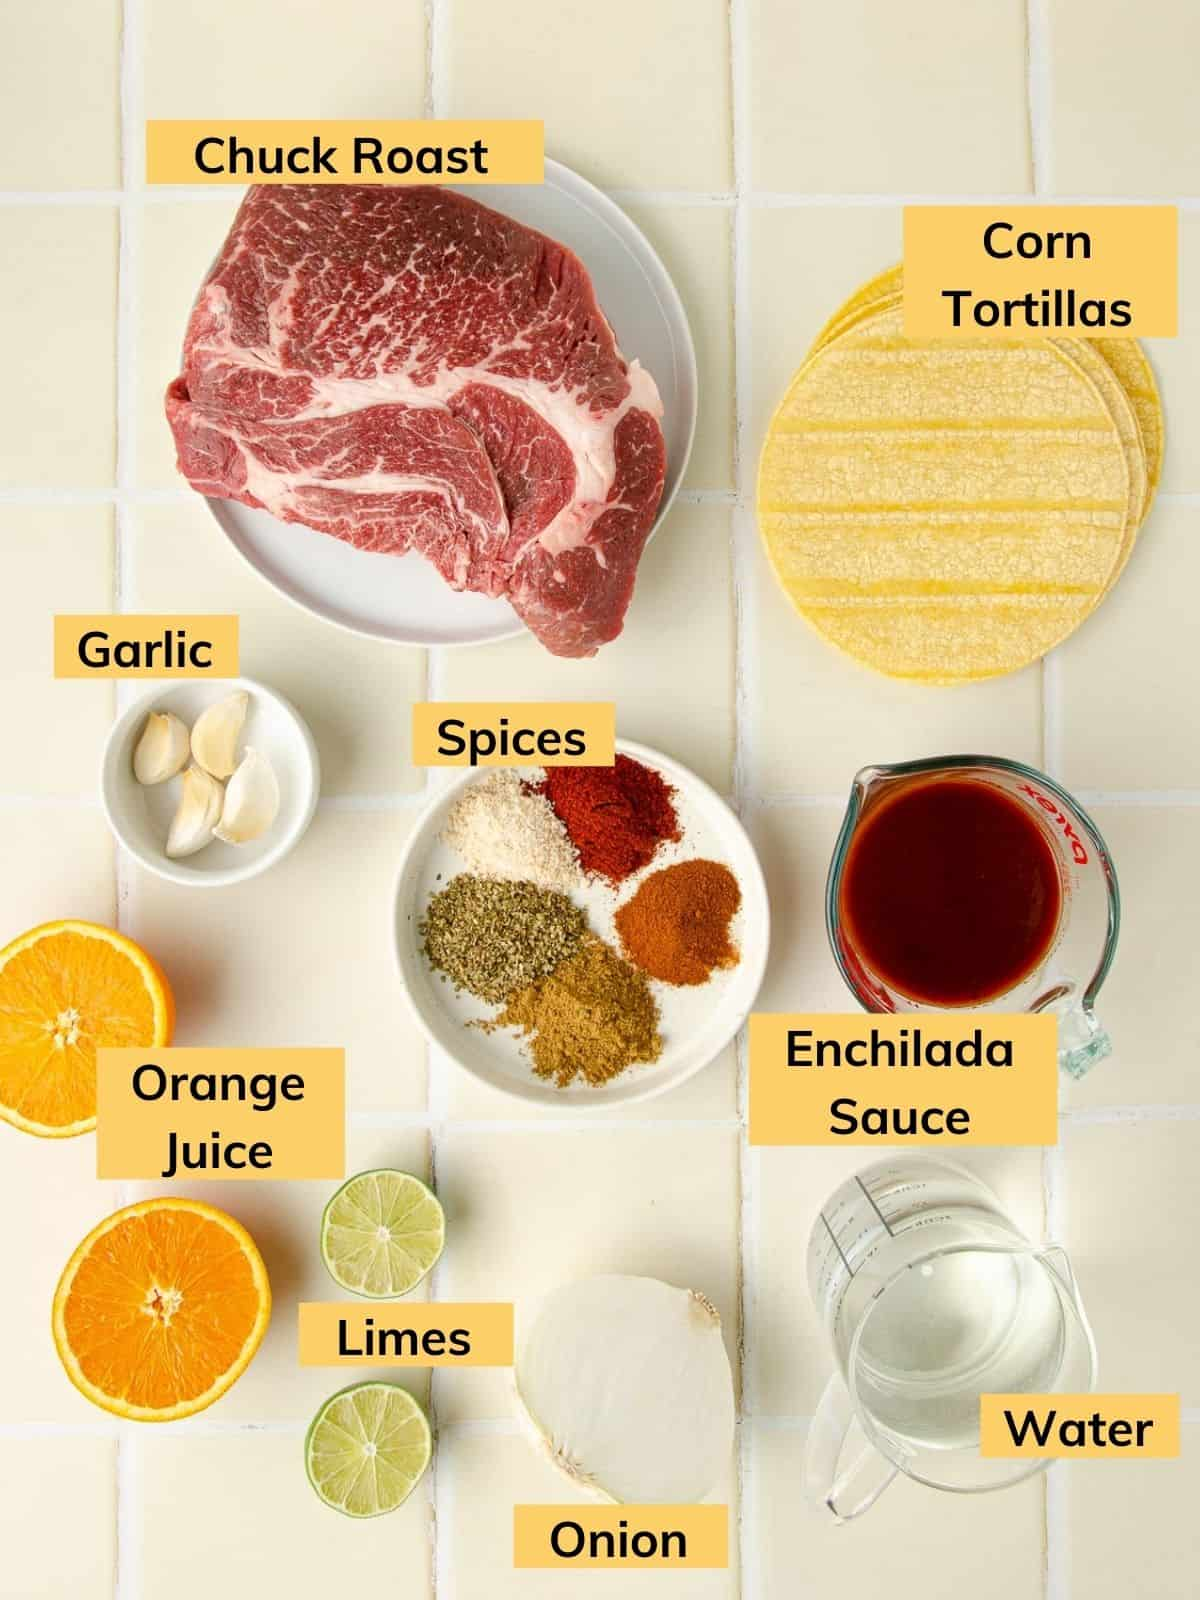 ingredients shot for barbacoa tacos: chuck roast, corn tortillas, enchilada sauce, water, half an onion, limes, orange juice, garlic cloves, and spices on a plate